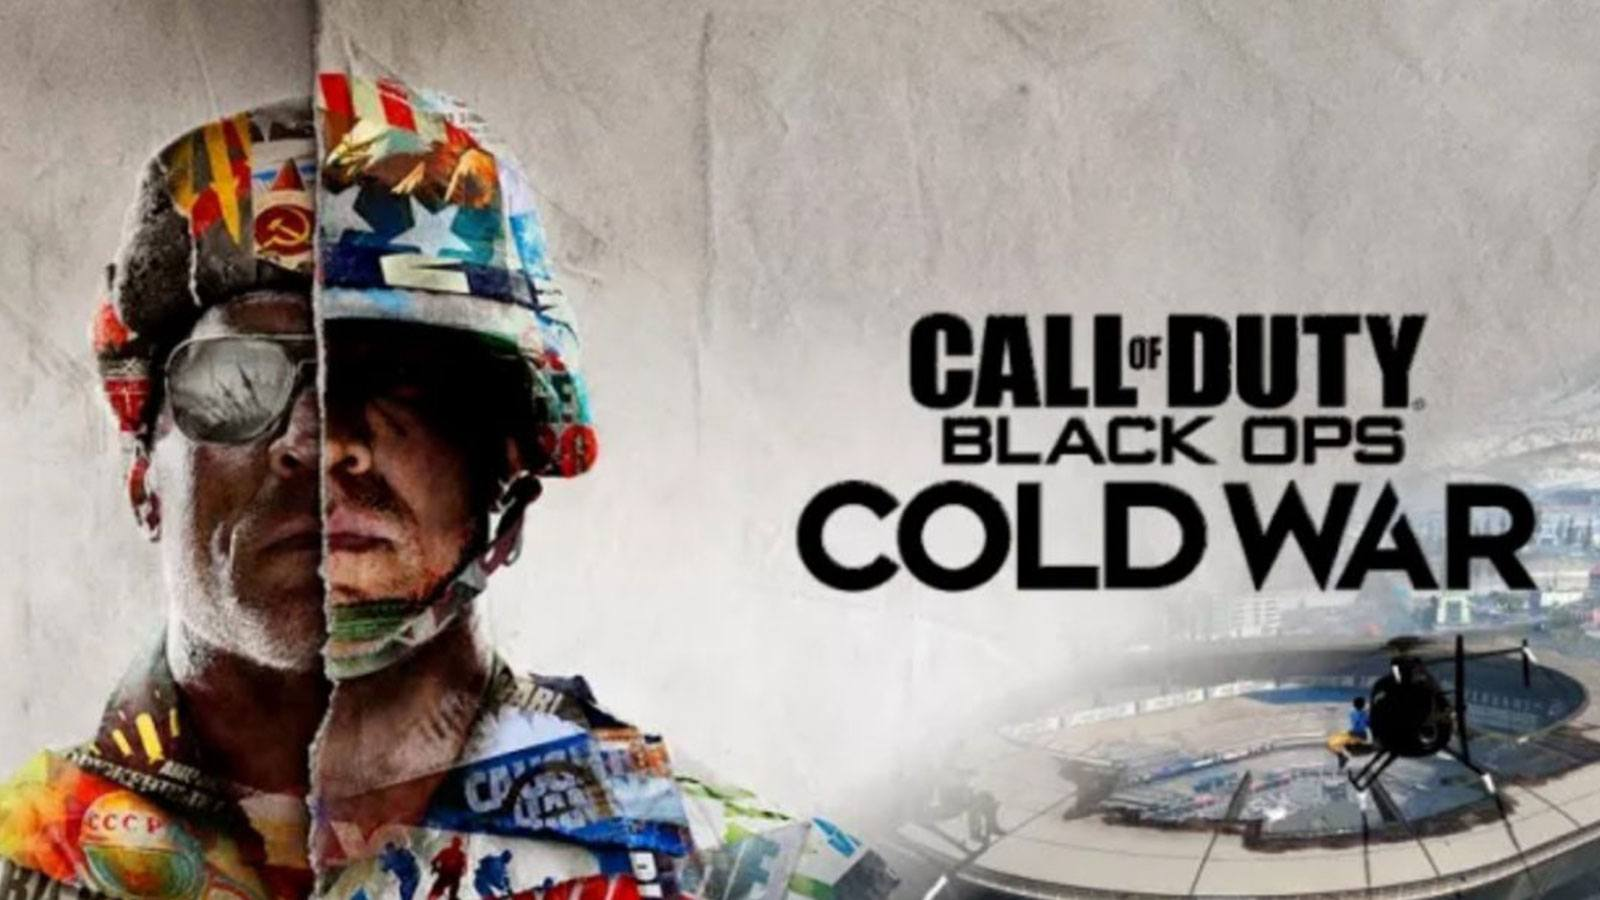 Black Ops Cold War couverture Treyarch Activision